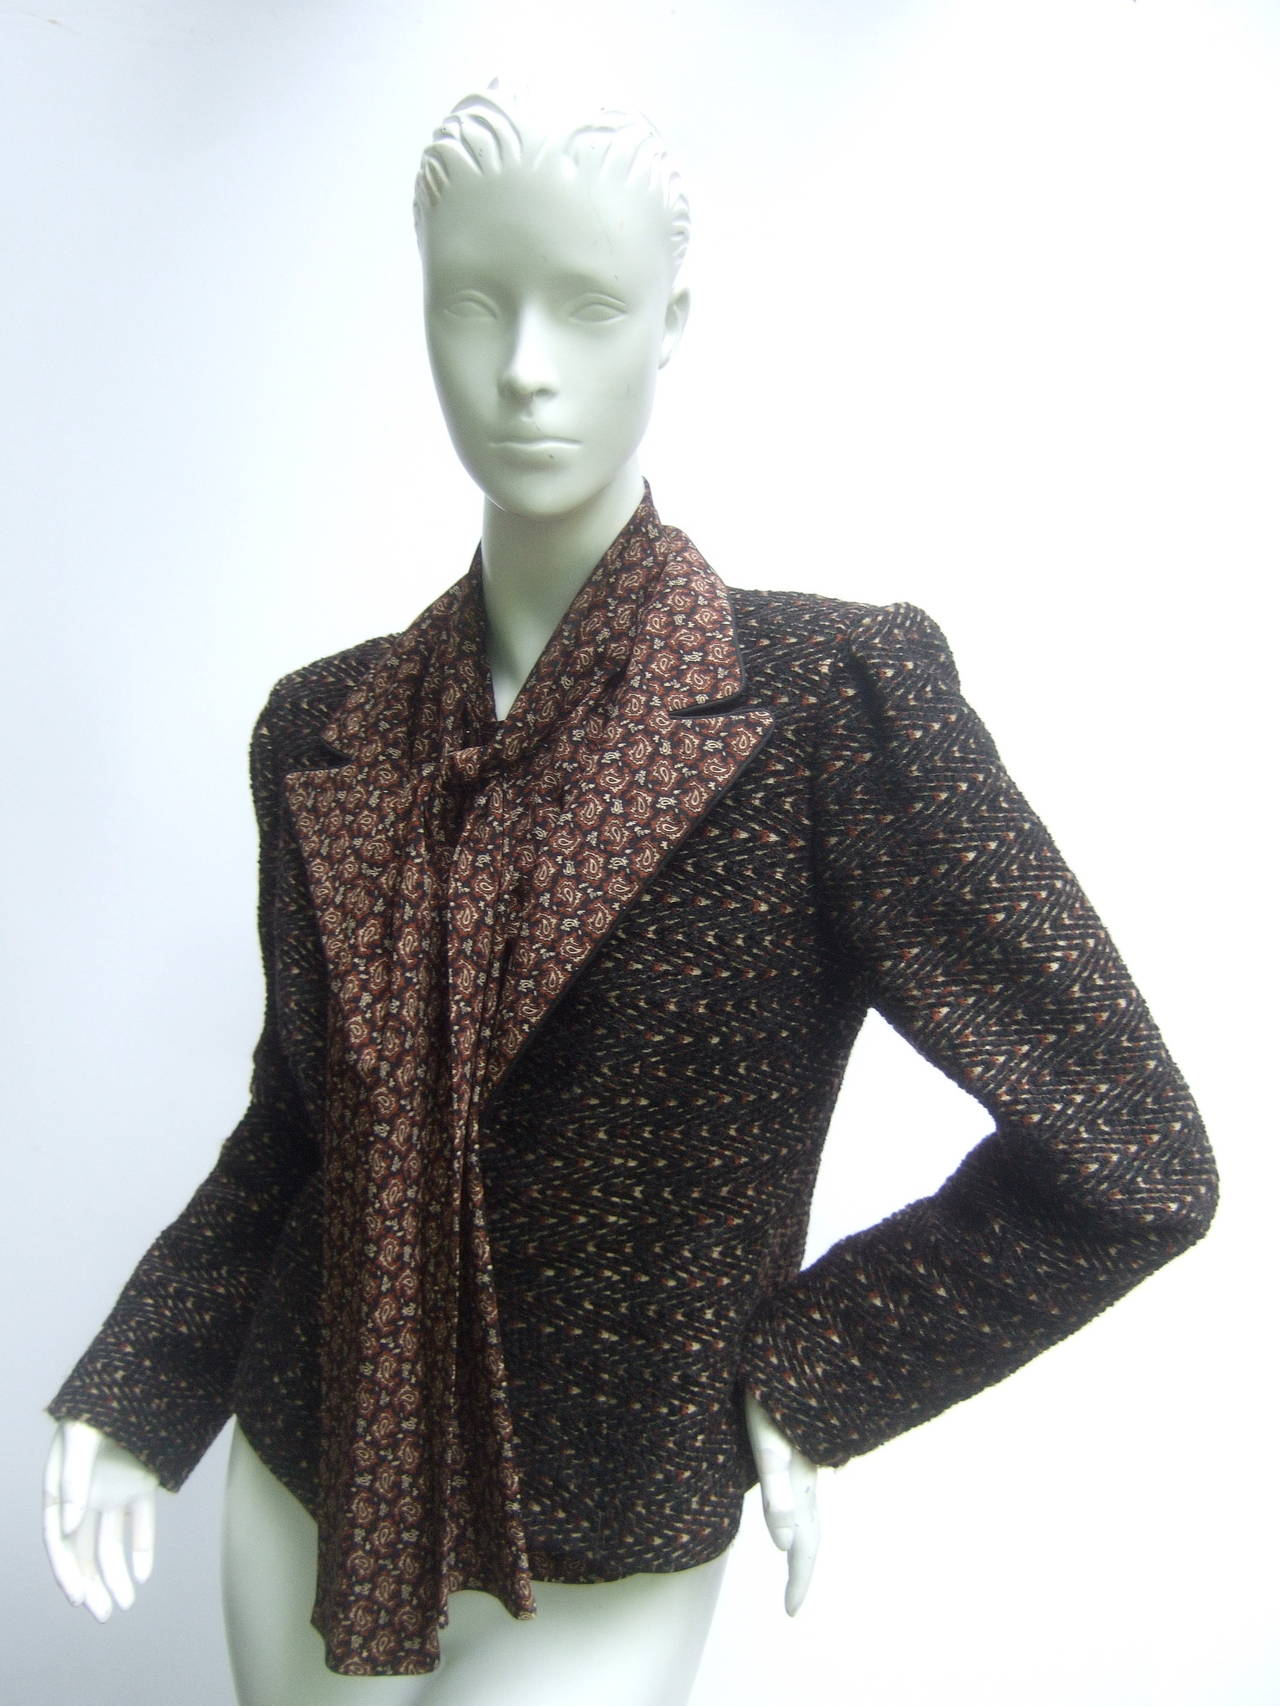 Lanvin Couture Paris Wool Jacket & Paisley Blouse Ensemble c 1980s 4